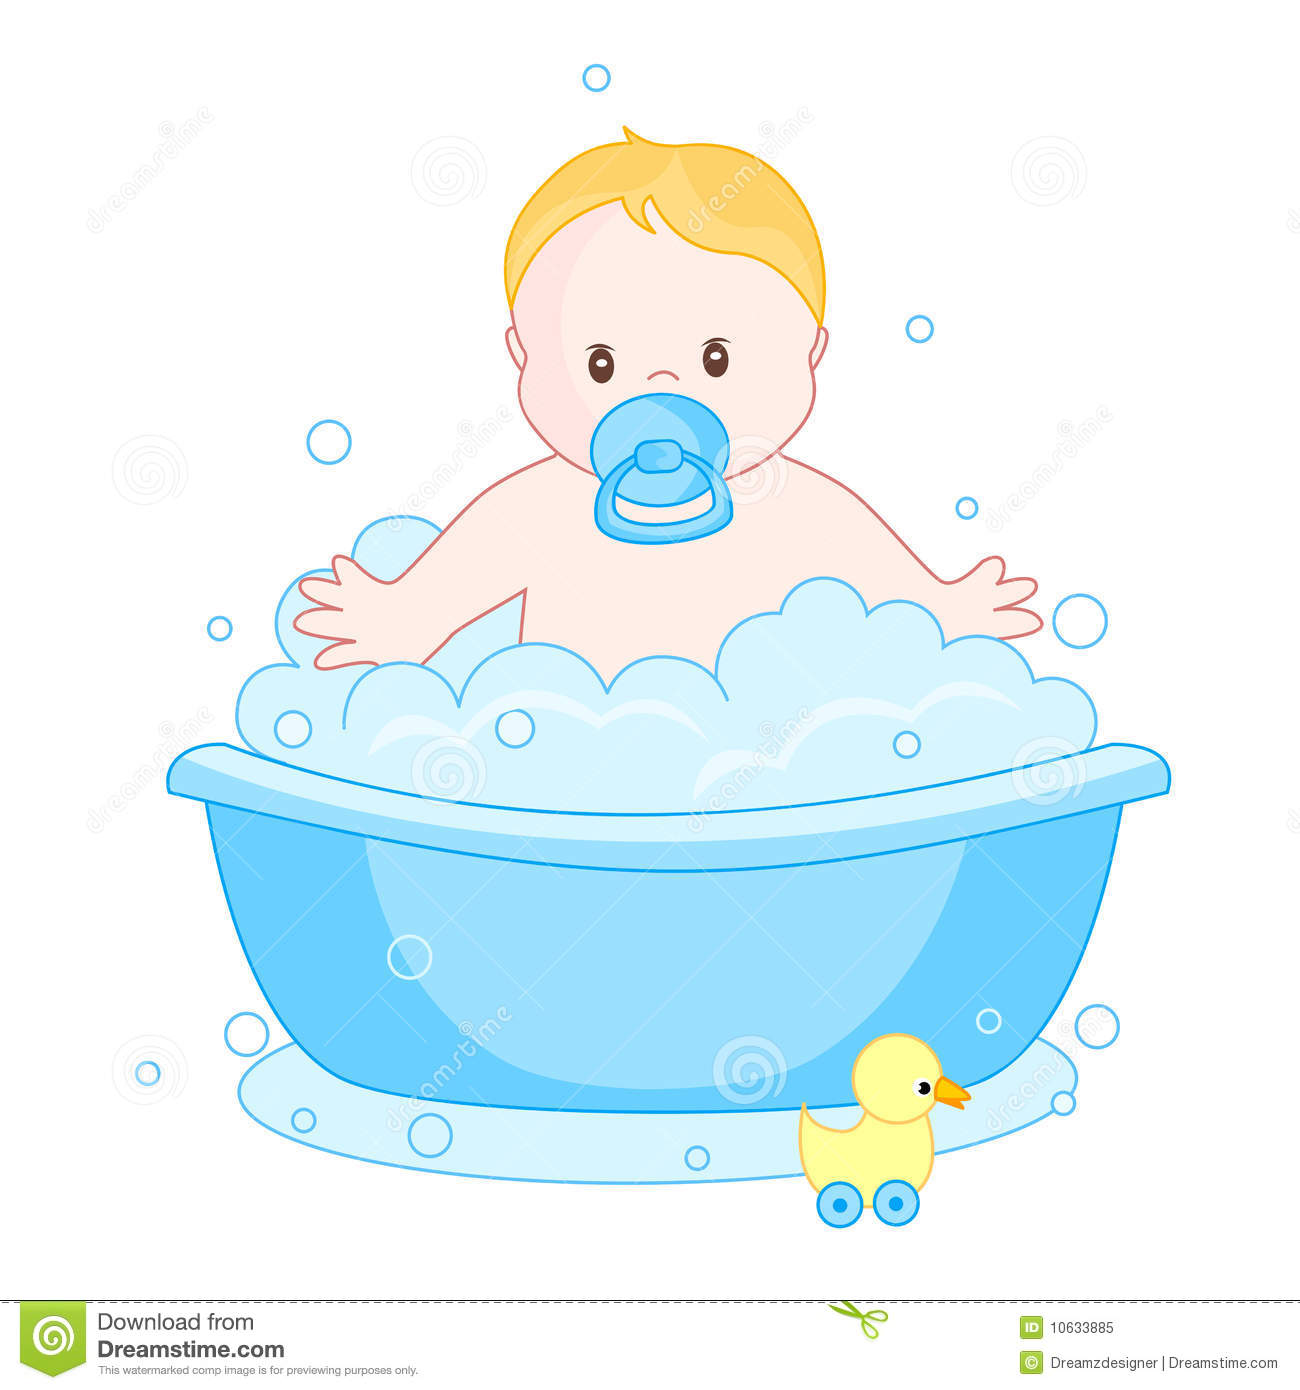 Baby boy having a bath stock vector. Illustration of baby - 10633885